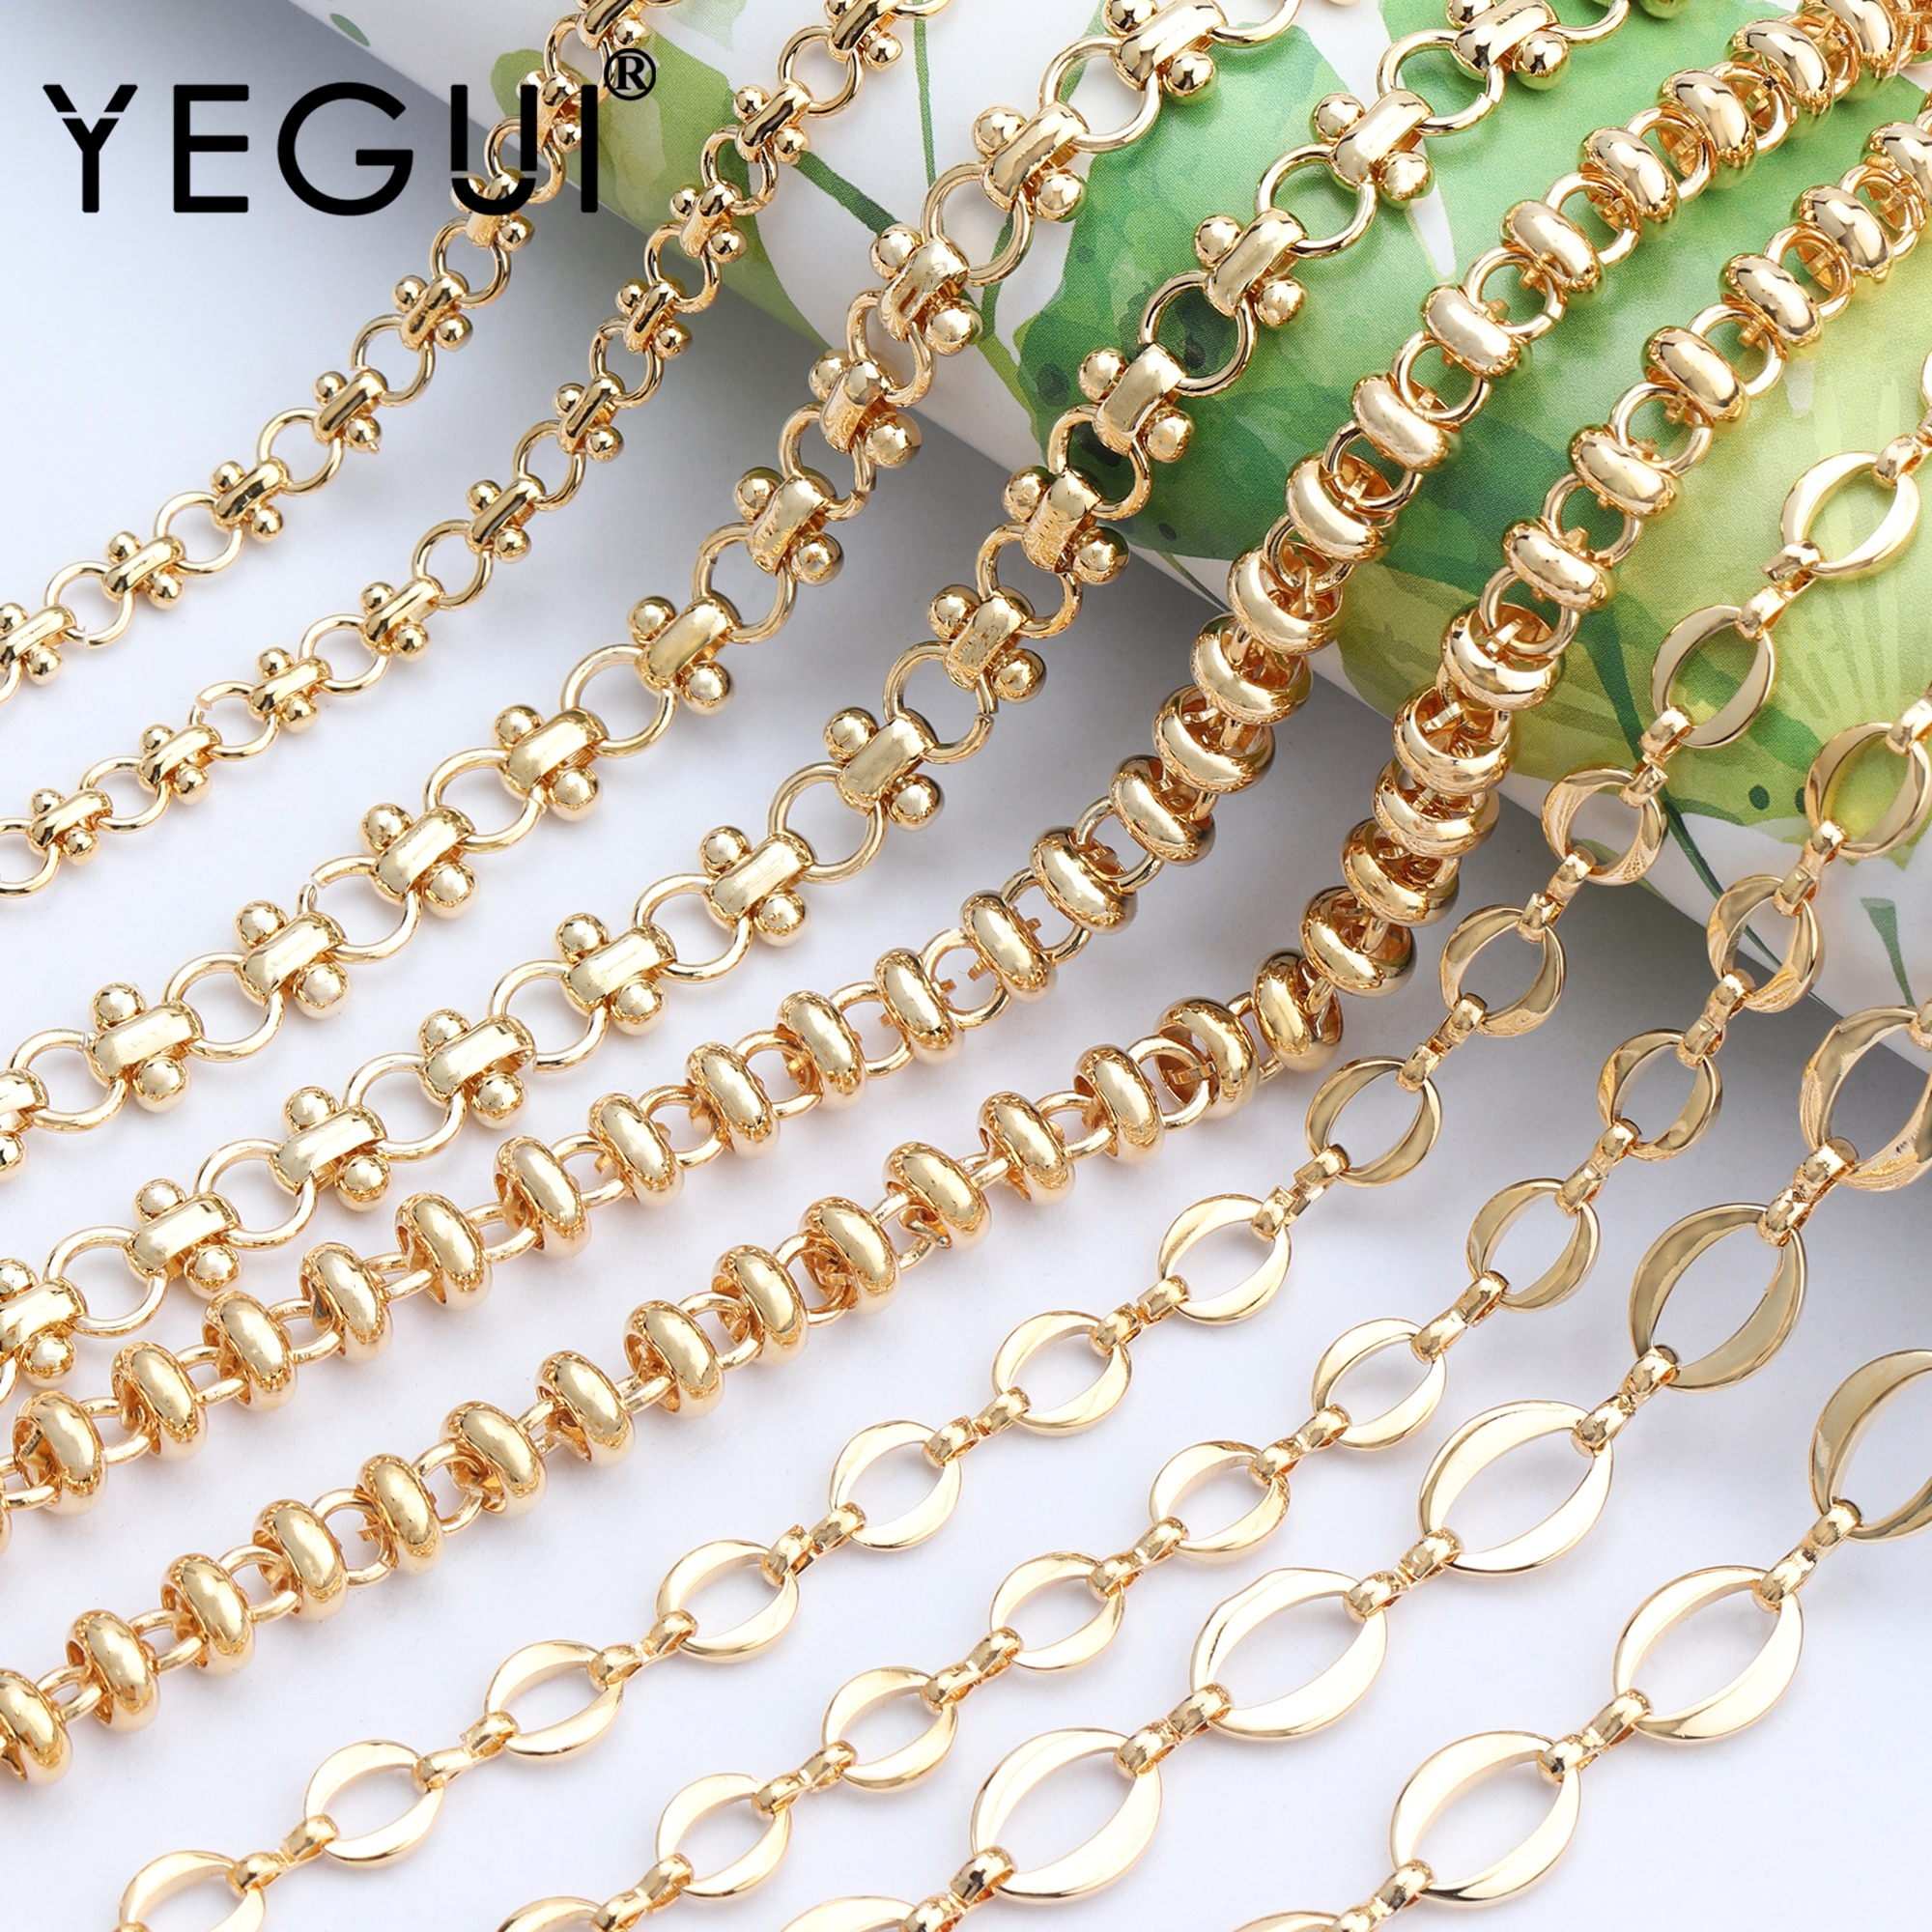 YEGUI C77,diy chain,18k gold plated,0.3 microns,jewelry accessories,copper metal,charms,jewelry making,diy chain necklace,1m/lot